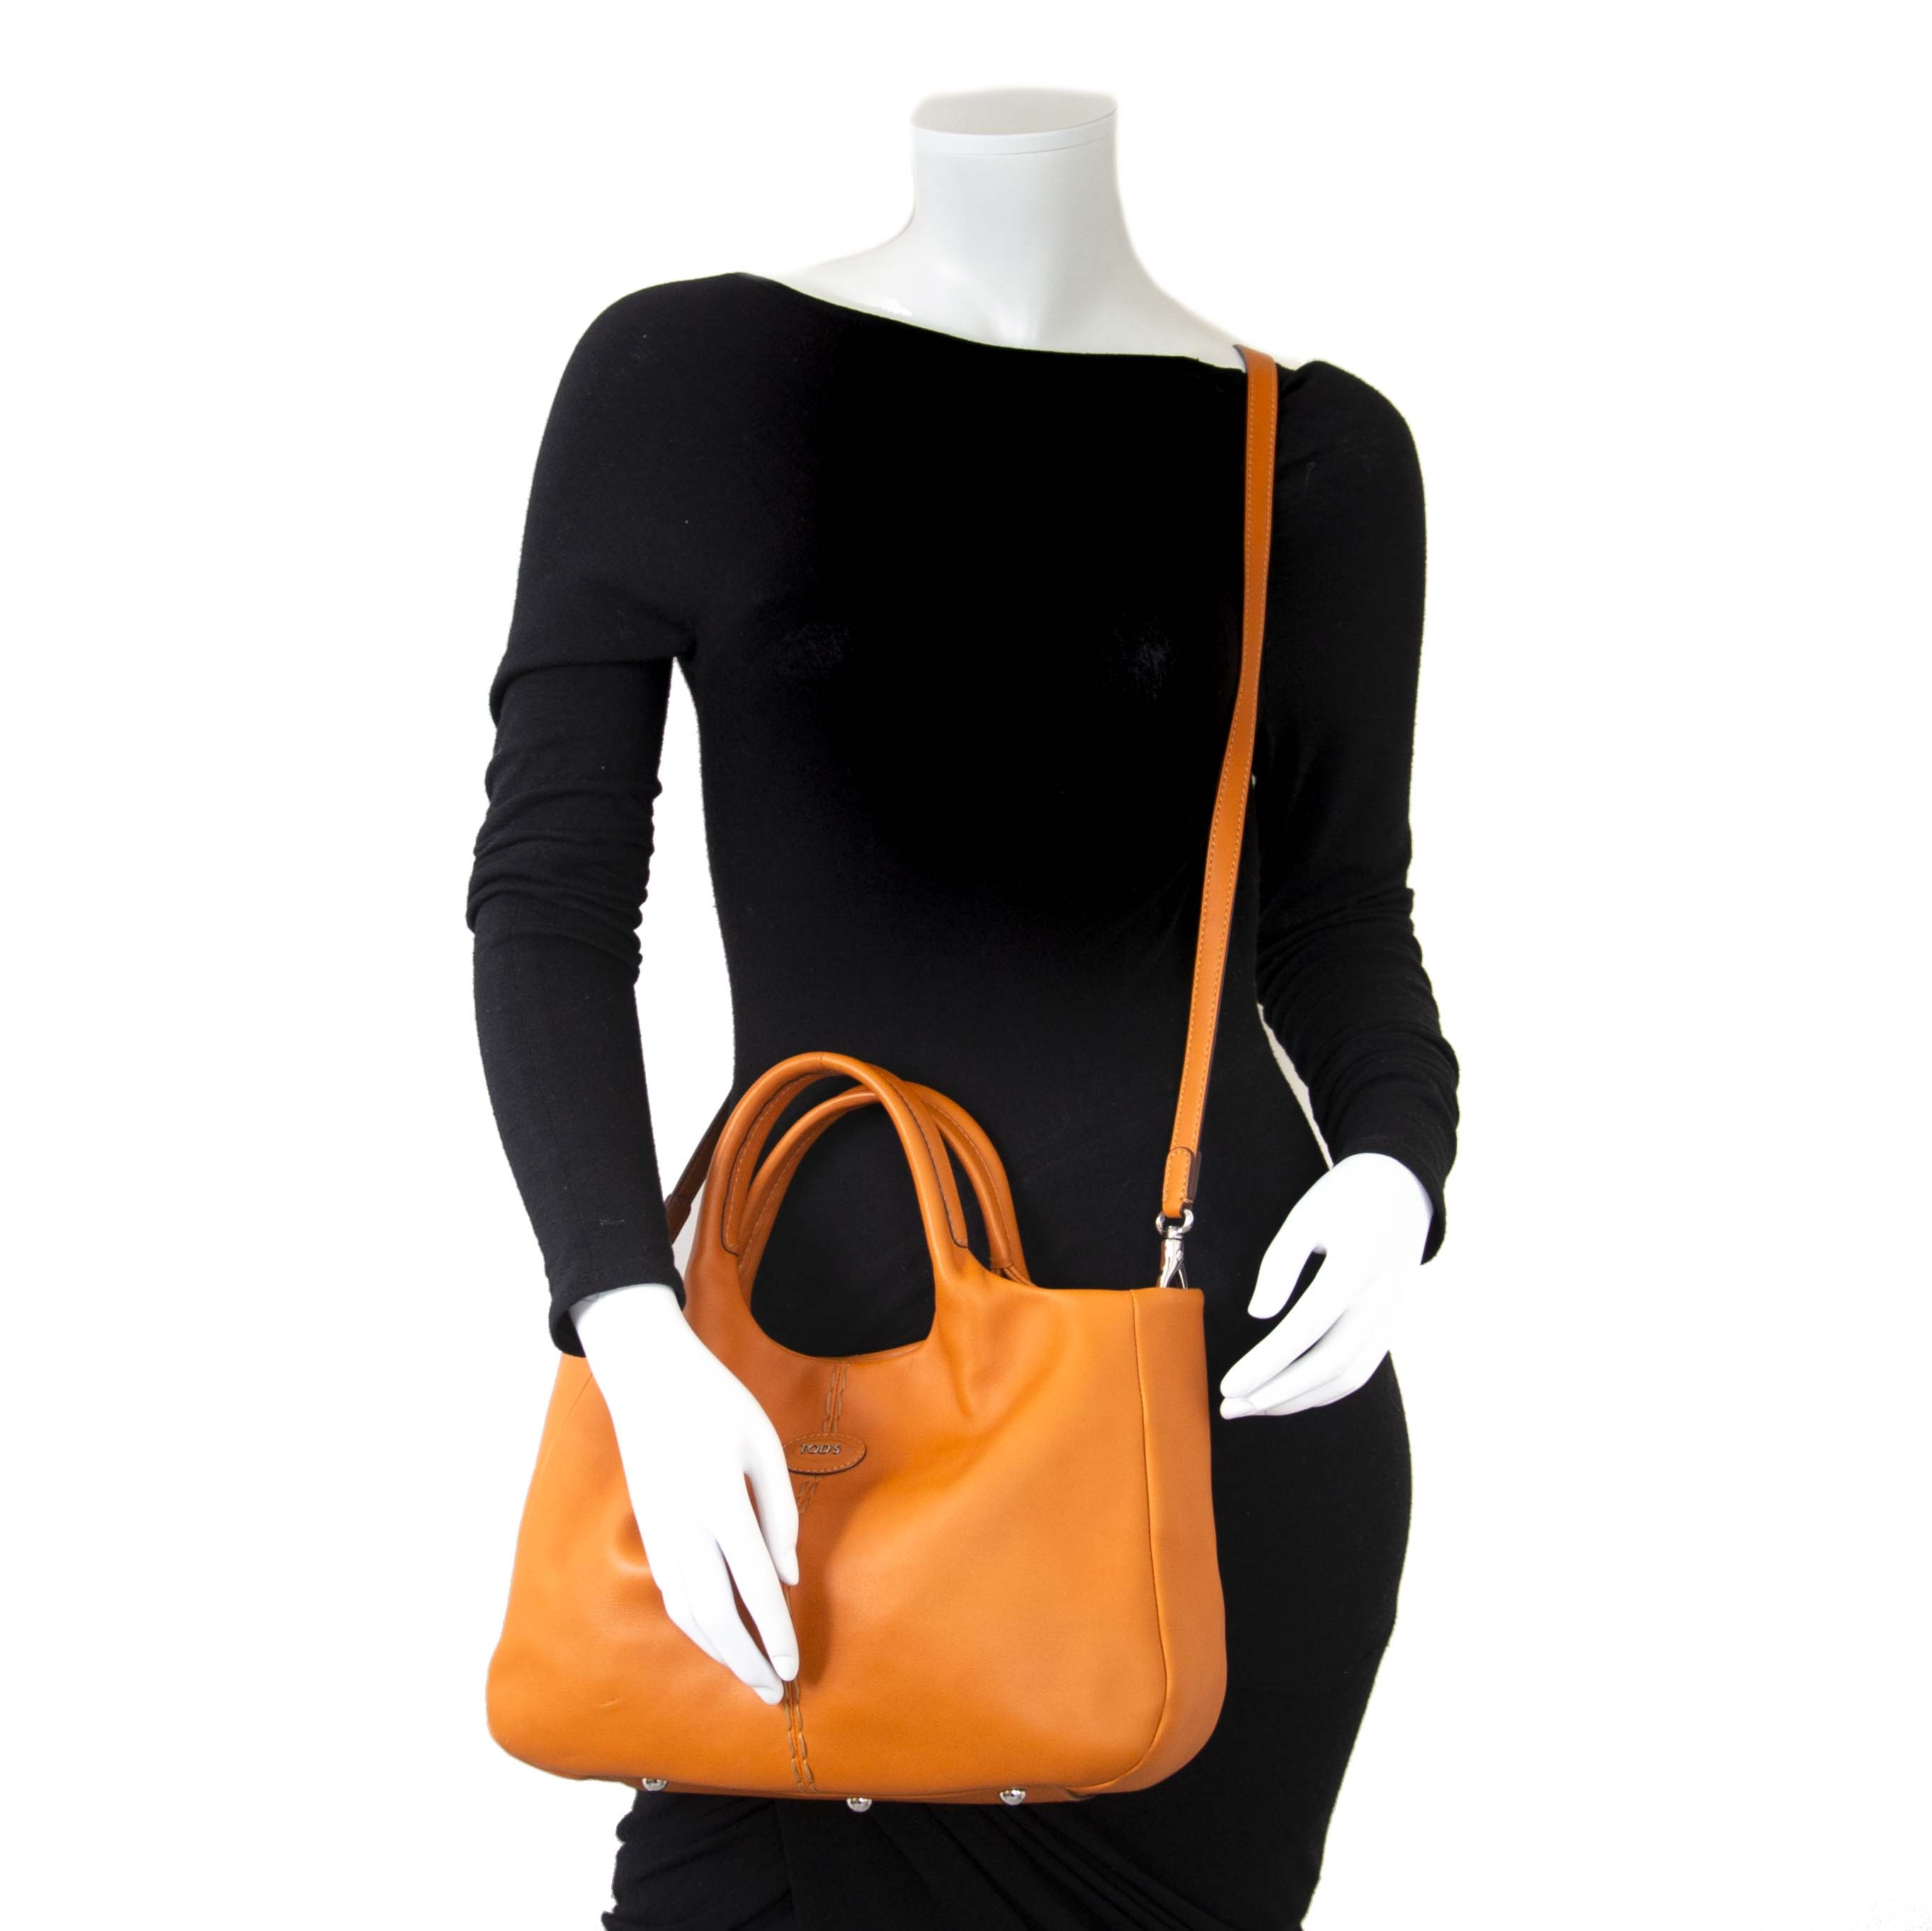 6a1bf3b431 ... Tod's Orange Leather Shoulder Bag now for sale at labellov vintage  fashion webshop belgium for the